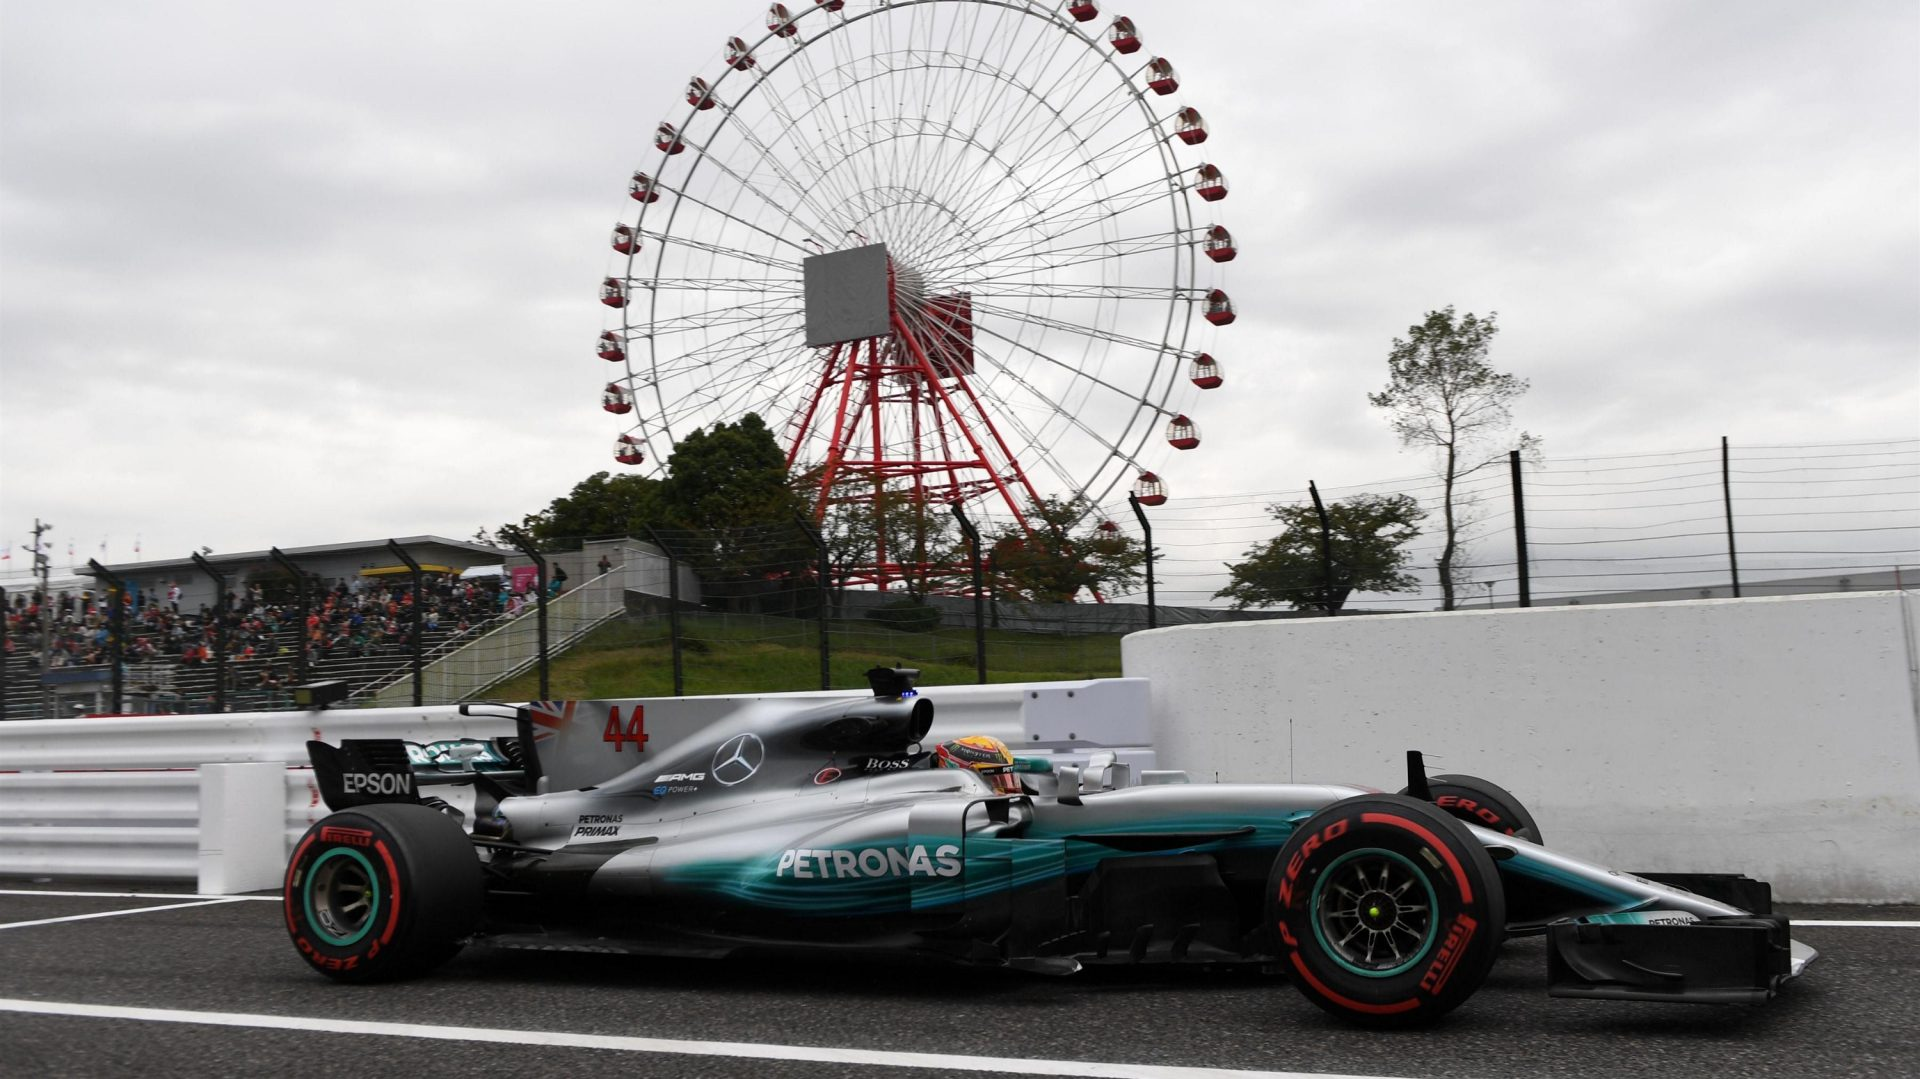 https://www.formula1.com/content/fom-website/en/latest/features/2017/10/gallery--the-best-images-from-japan/_jcr_content/featureContent/manual_gallery_0/image10.img.1920.medium.jpg/1507254545668.jpg